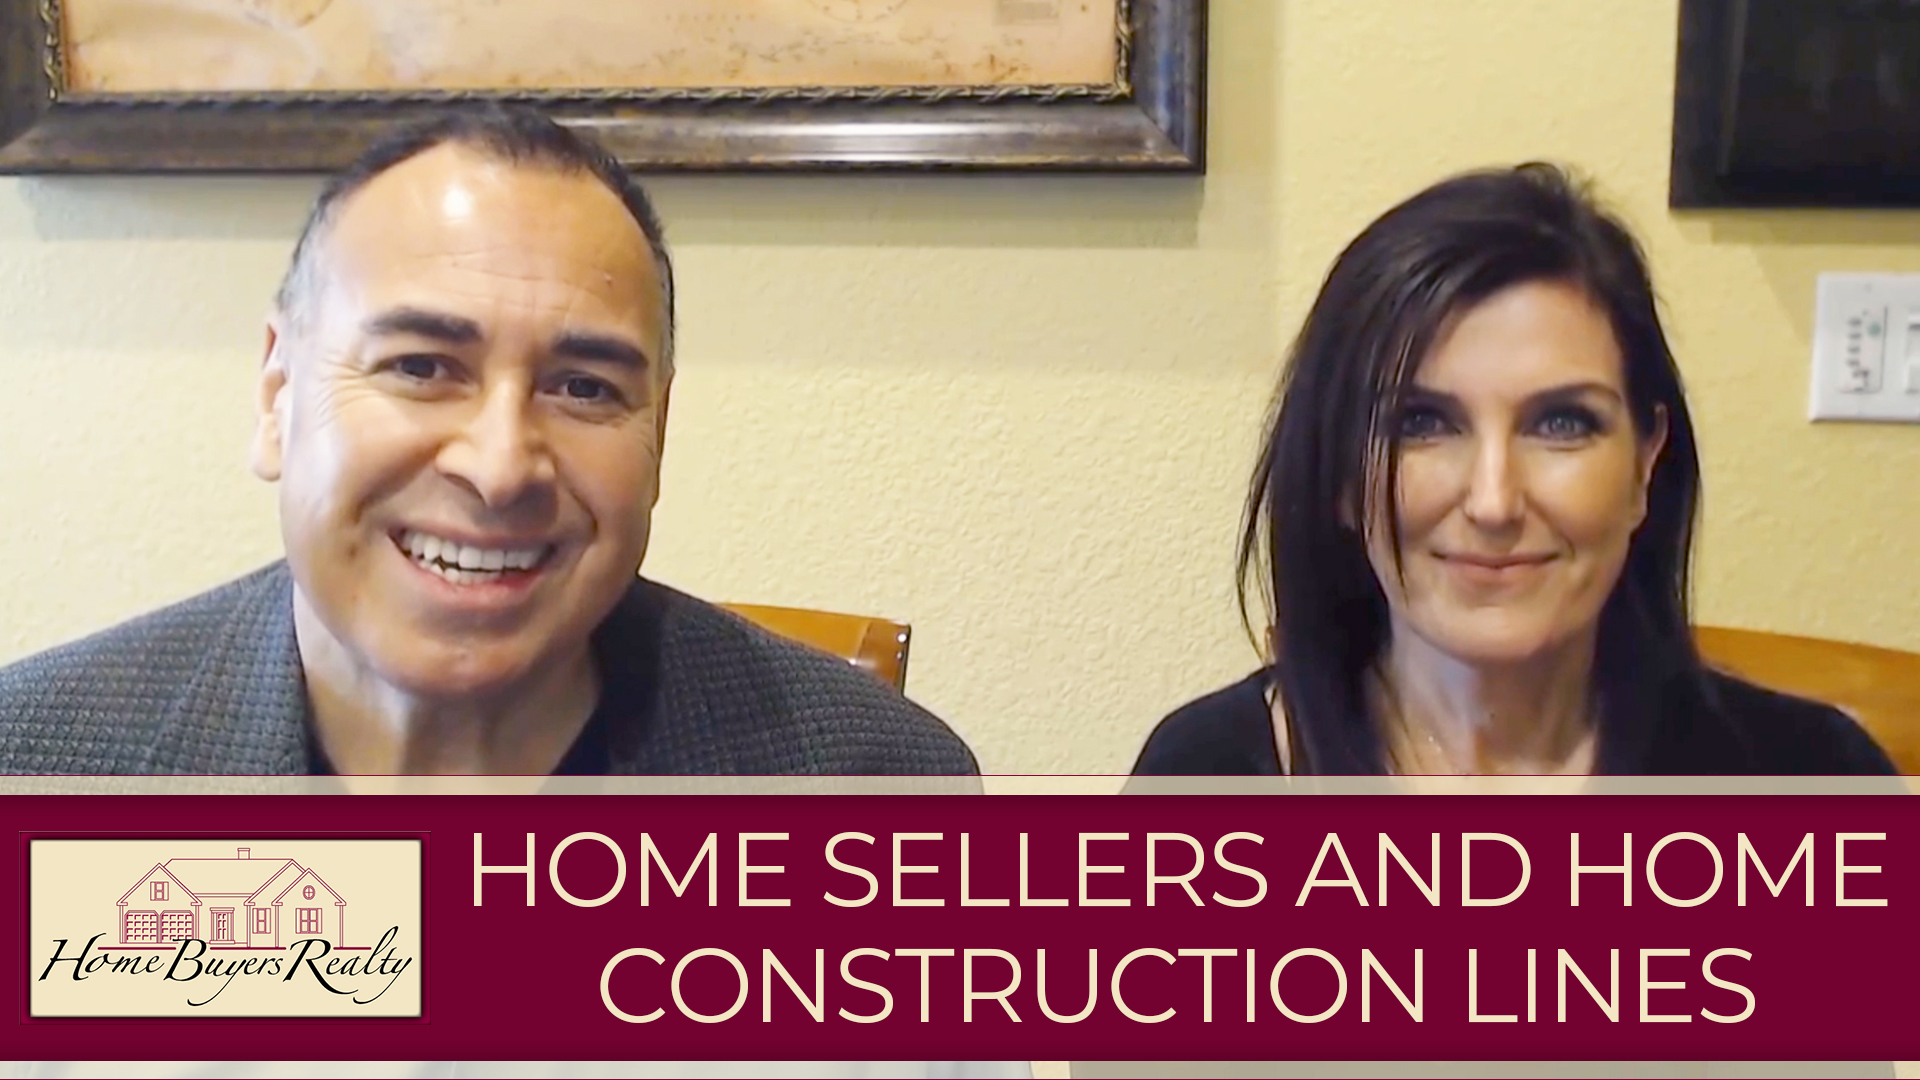 How Home Sellers Benefit From Home Construction Lines